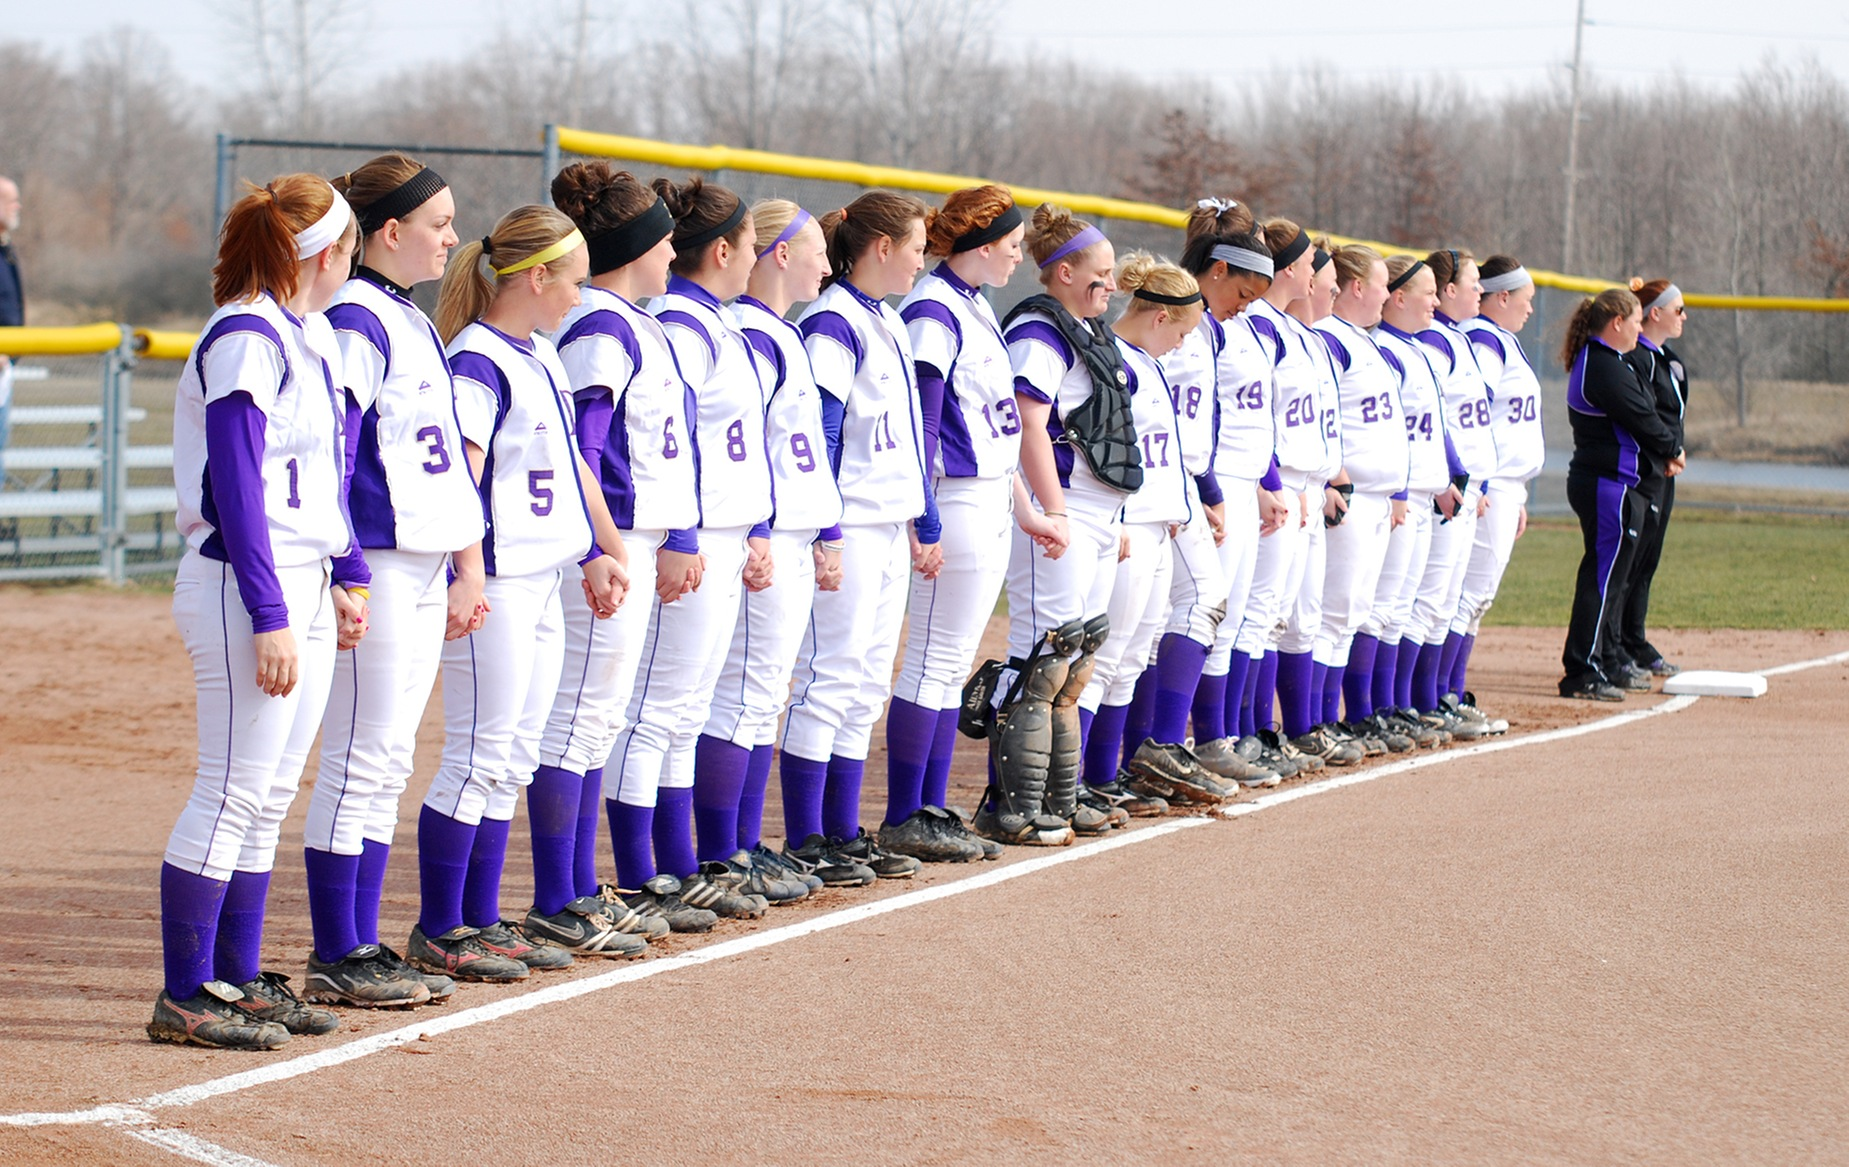 Stagnant Offense Hurts DC in Doubleheader with ONU